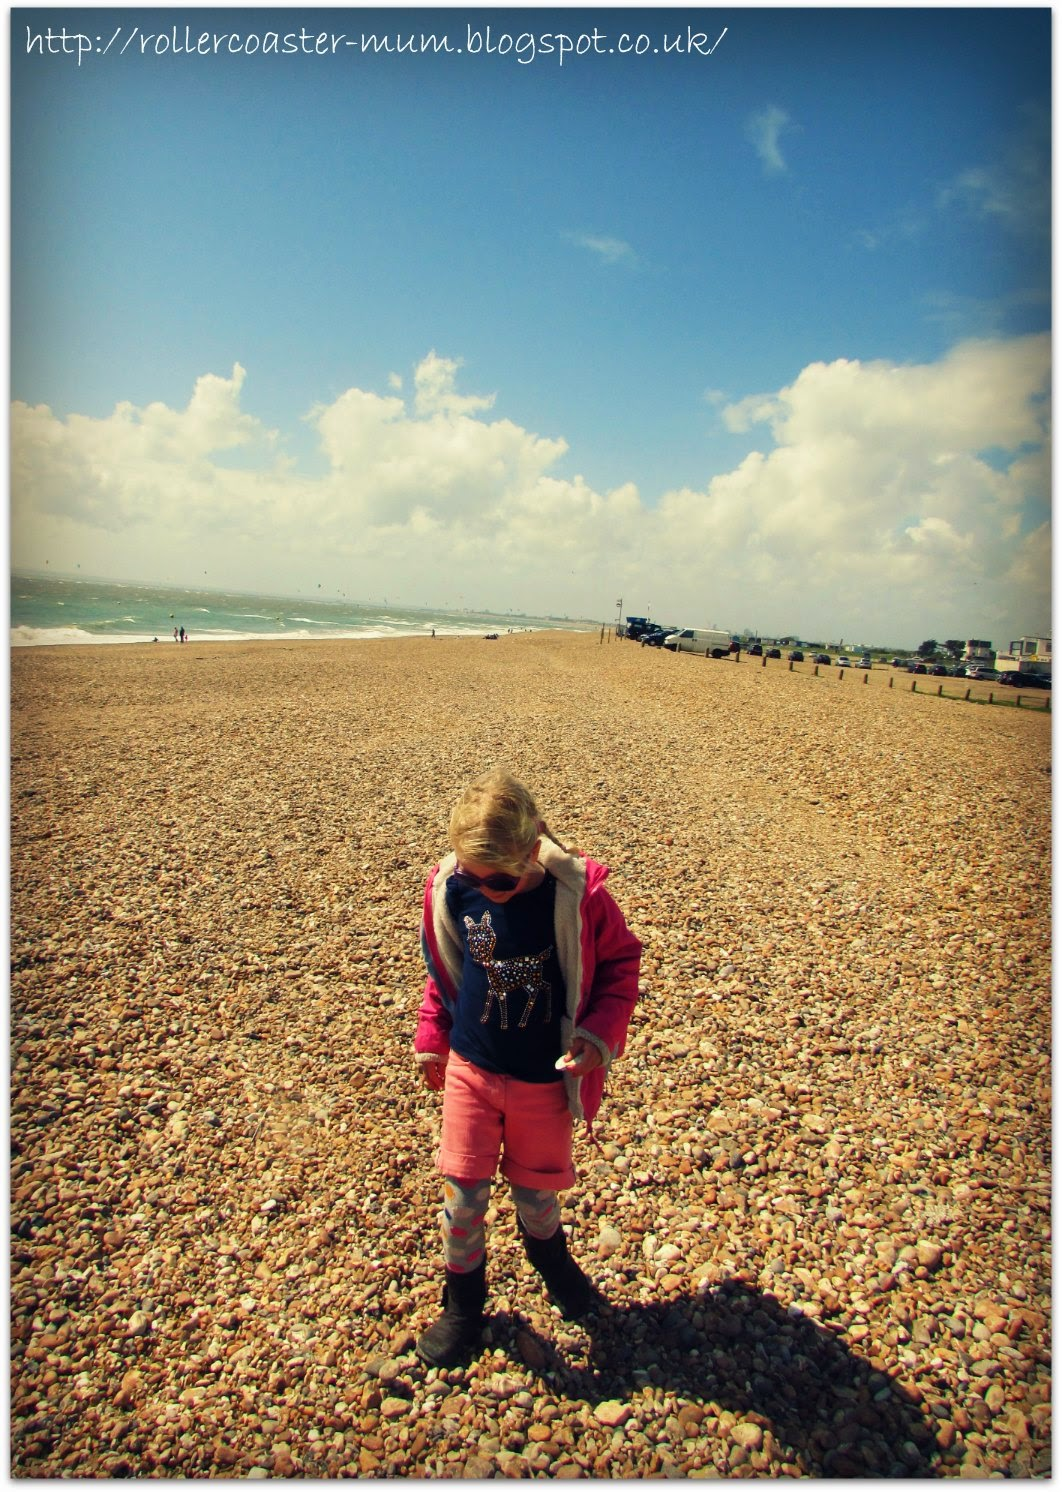 Oh we do like to be beside the seaside! A Trip to Hayling Island